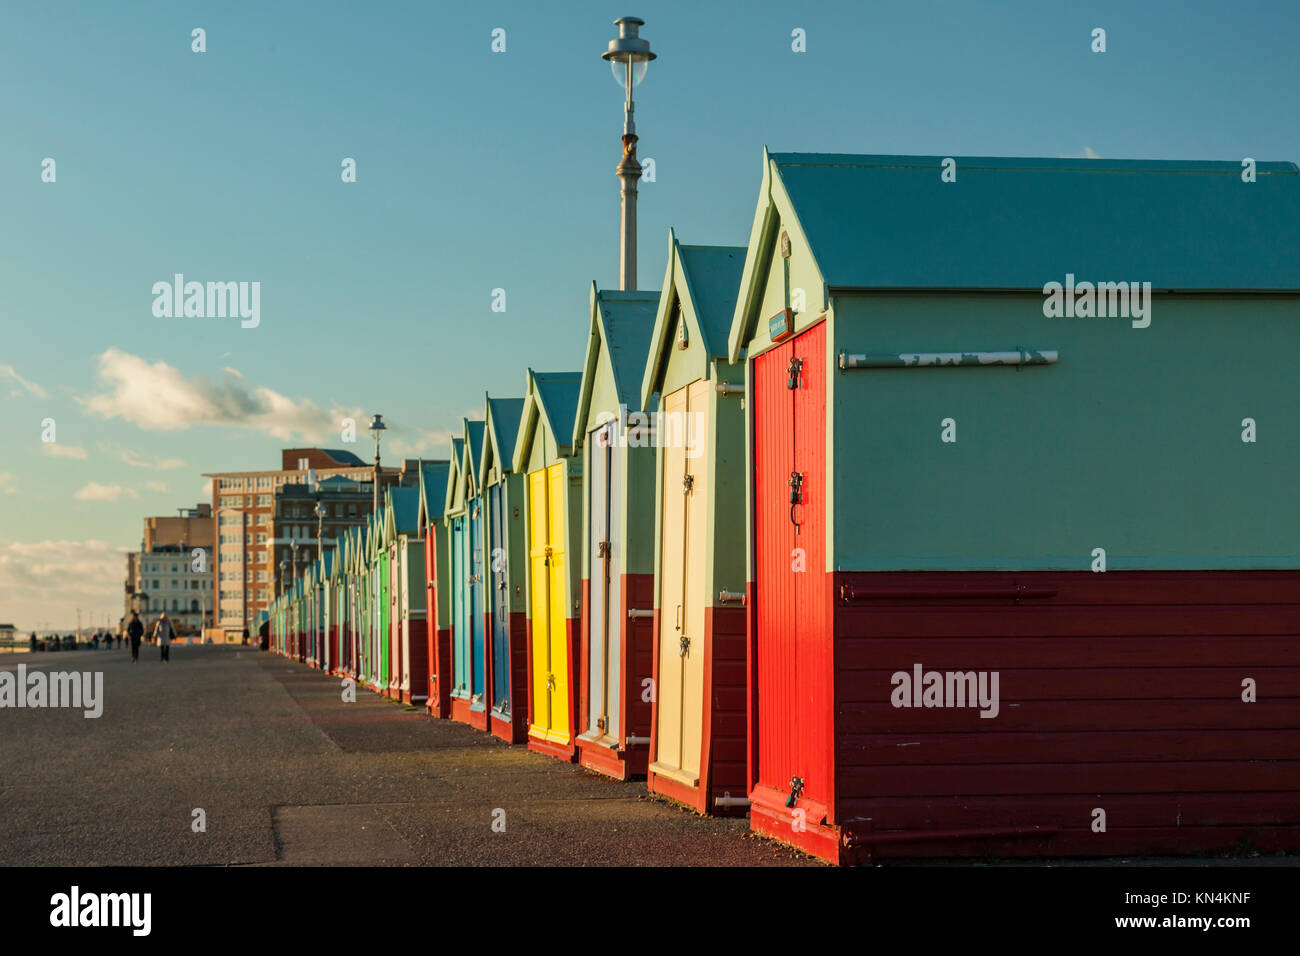 Brighton beach huts on a winter afternoon, East Sussex, England. Stock Photo